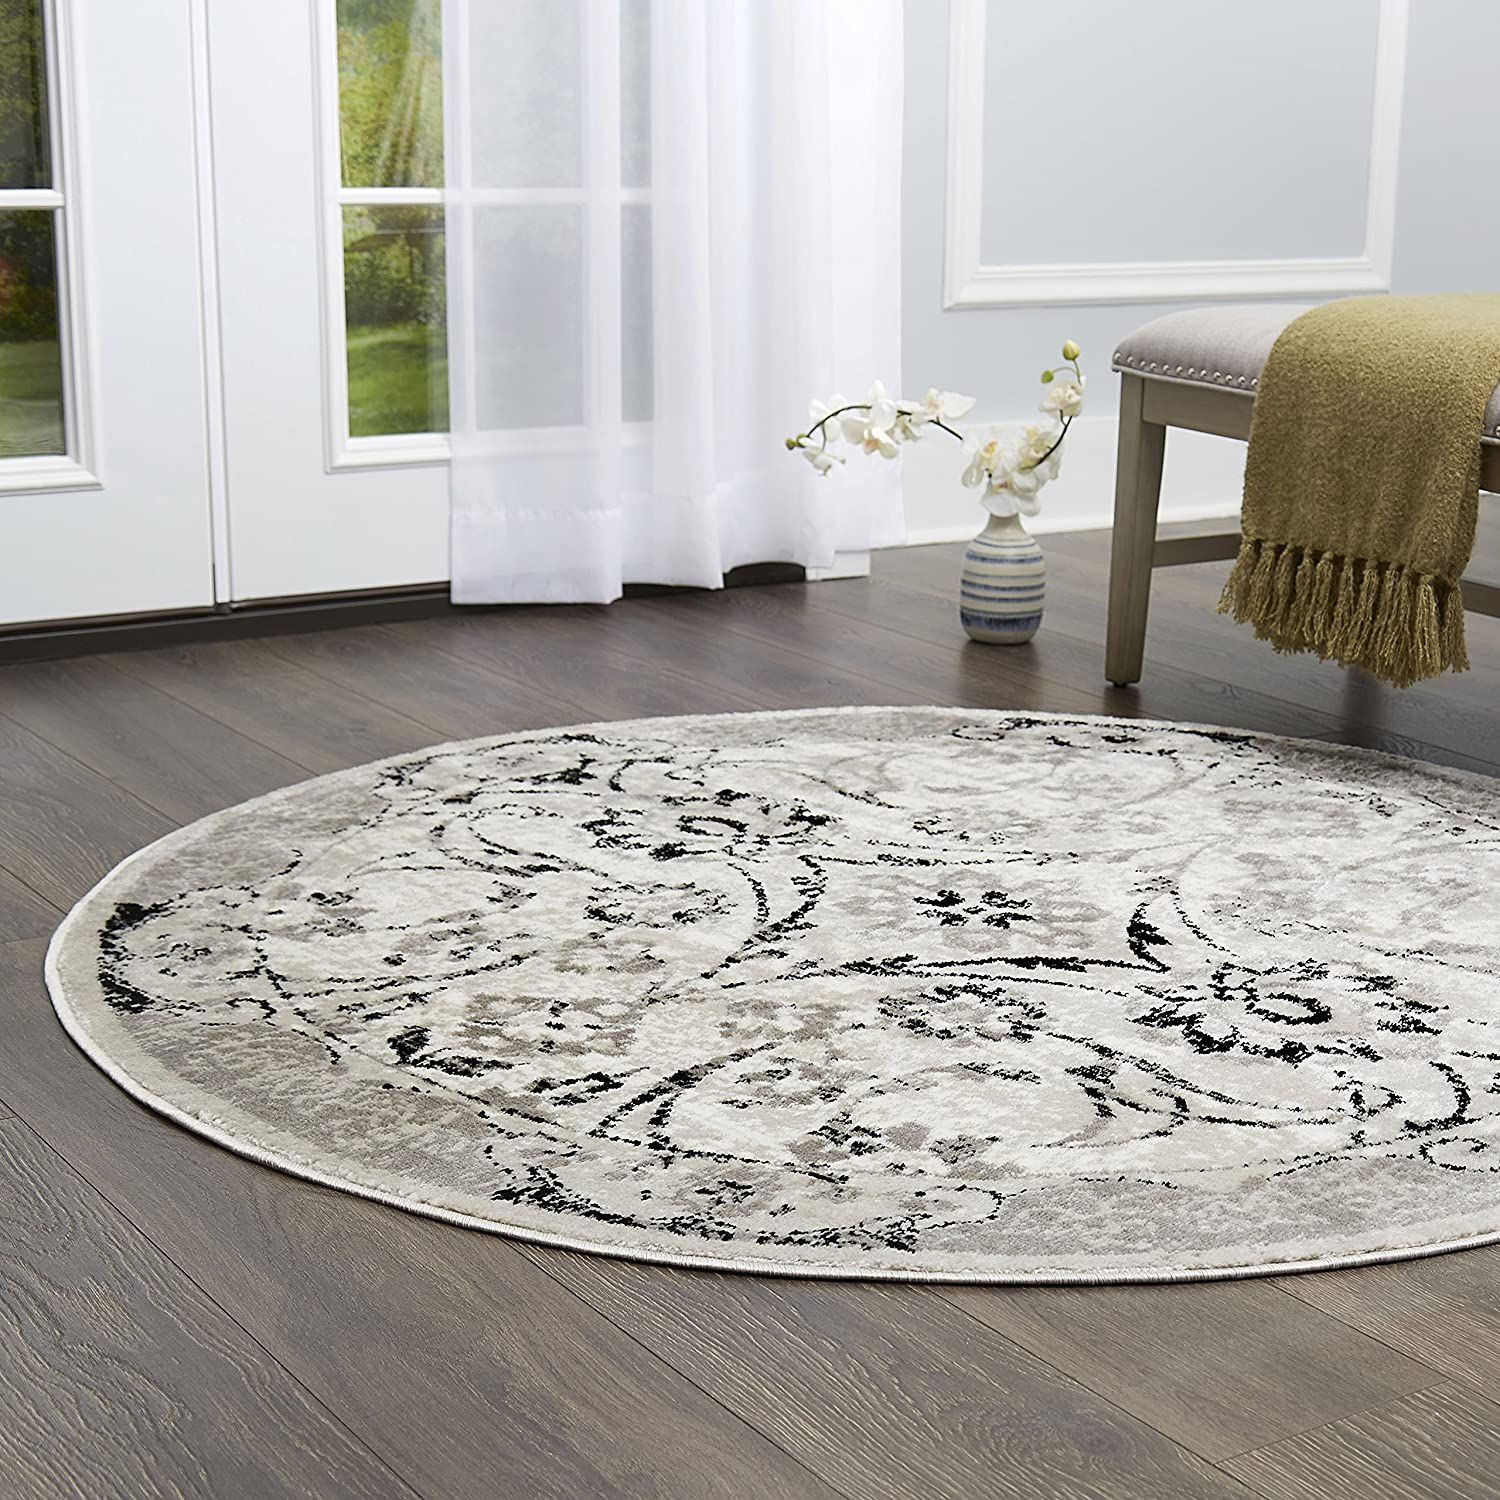 Home Dynamix Boho Shailene Area Rug | Transitional Living Room Rug |Modern  Floral Print with Contemporary Border | Distressed Texture | Silver 5\'2"|1500|1500|?|en|2|45484332bf278118f664c8140e1036cb|False|UNLIKELY|0.3045135736465454